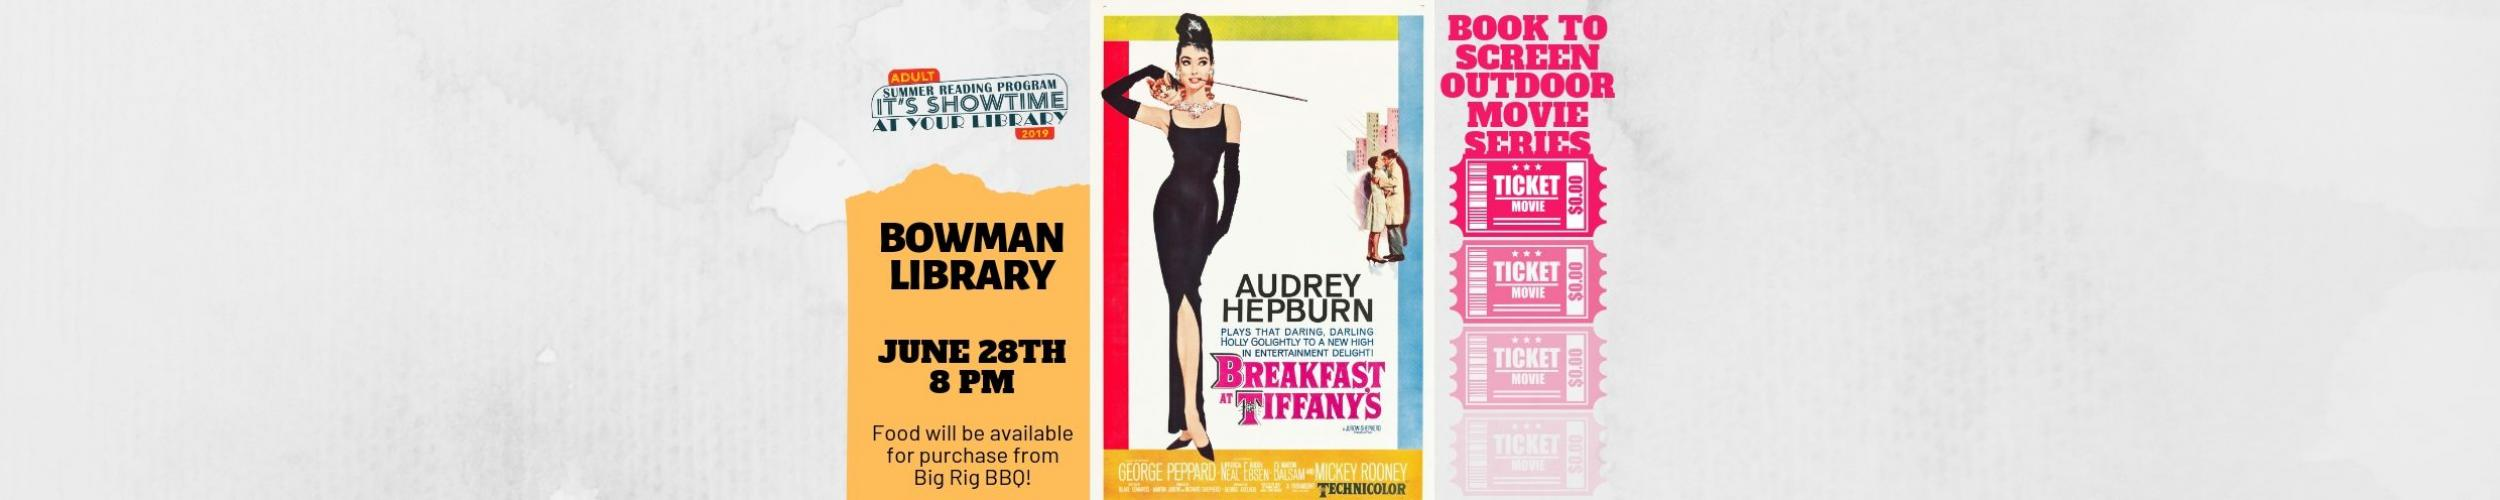 breakfast at tiffany's outdoor movie web banner